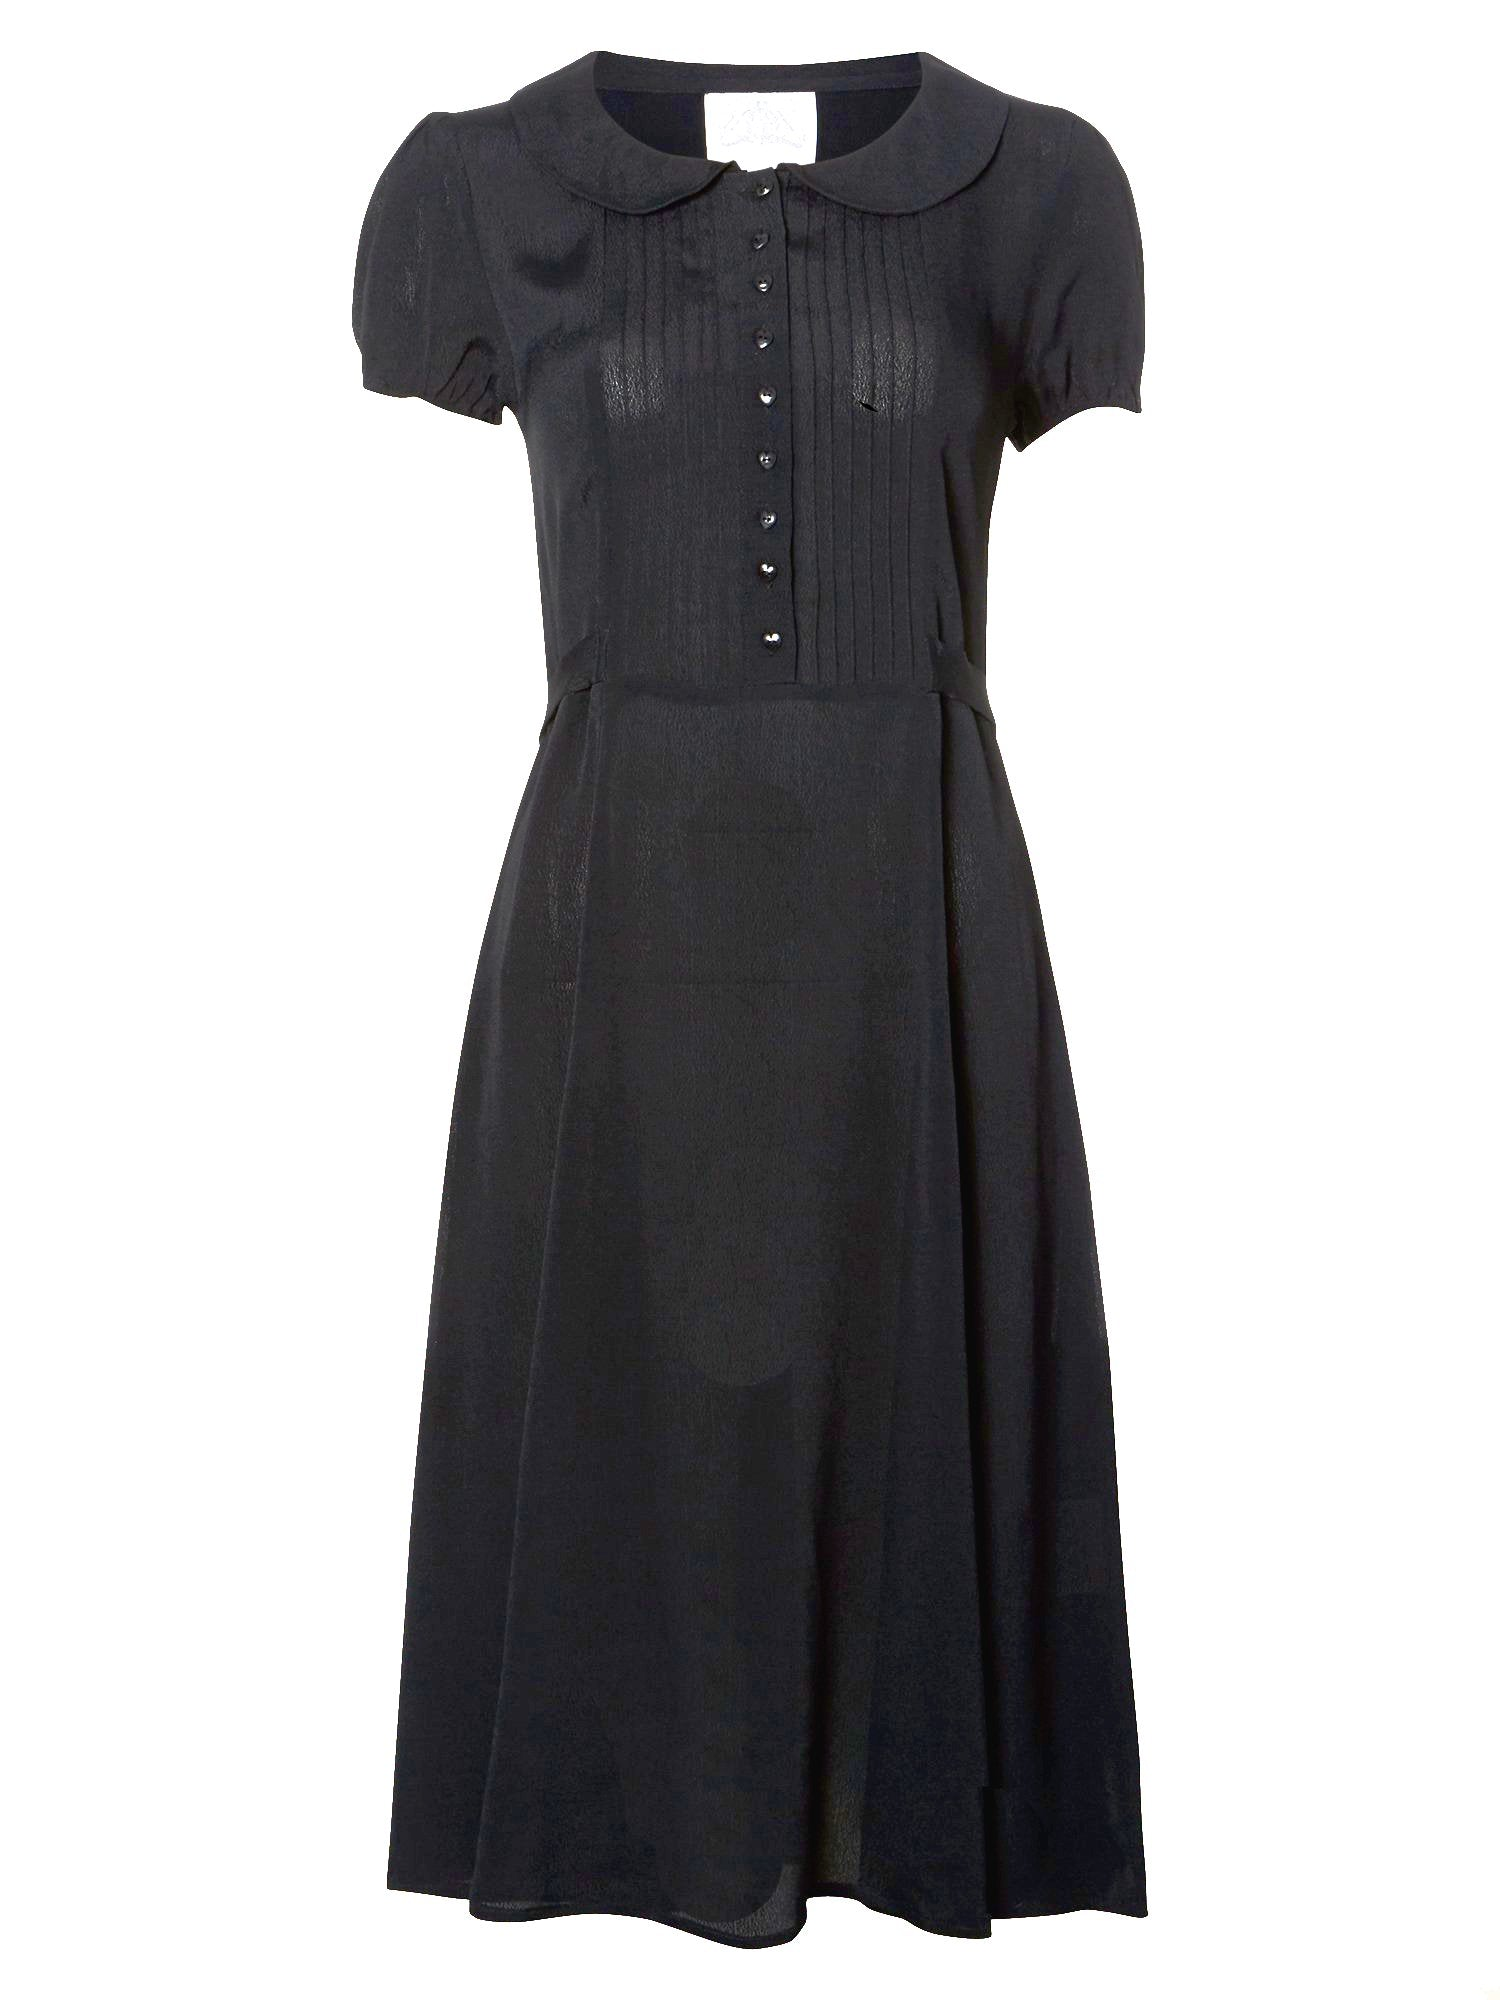 """Dorothy"" Swing Dress in Black by The Seamstress of Bloomsbury, Mid 1940s Inspired, Vintage Style"